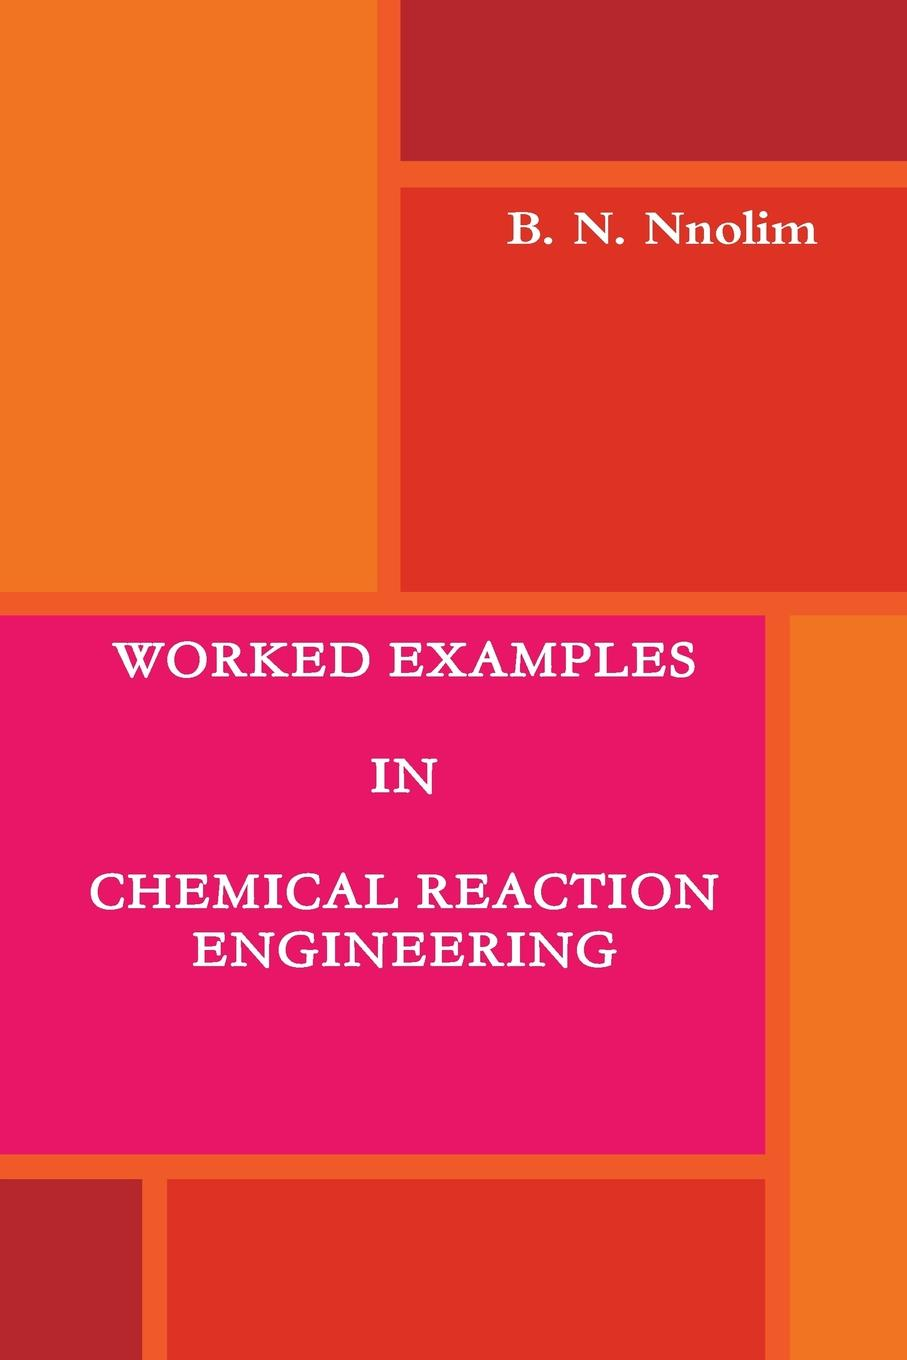 B. N. Nnolim WORKED EXAMPLES IN CHEMICAL REACTION ENGINEERING michel soustelle an introduction to chemical kinetics